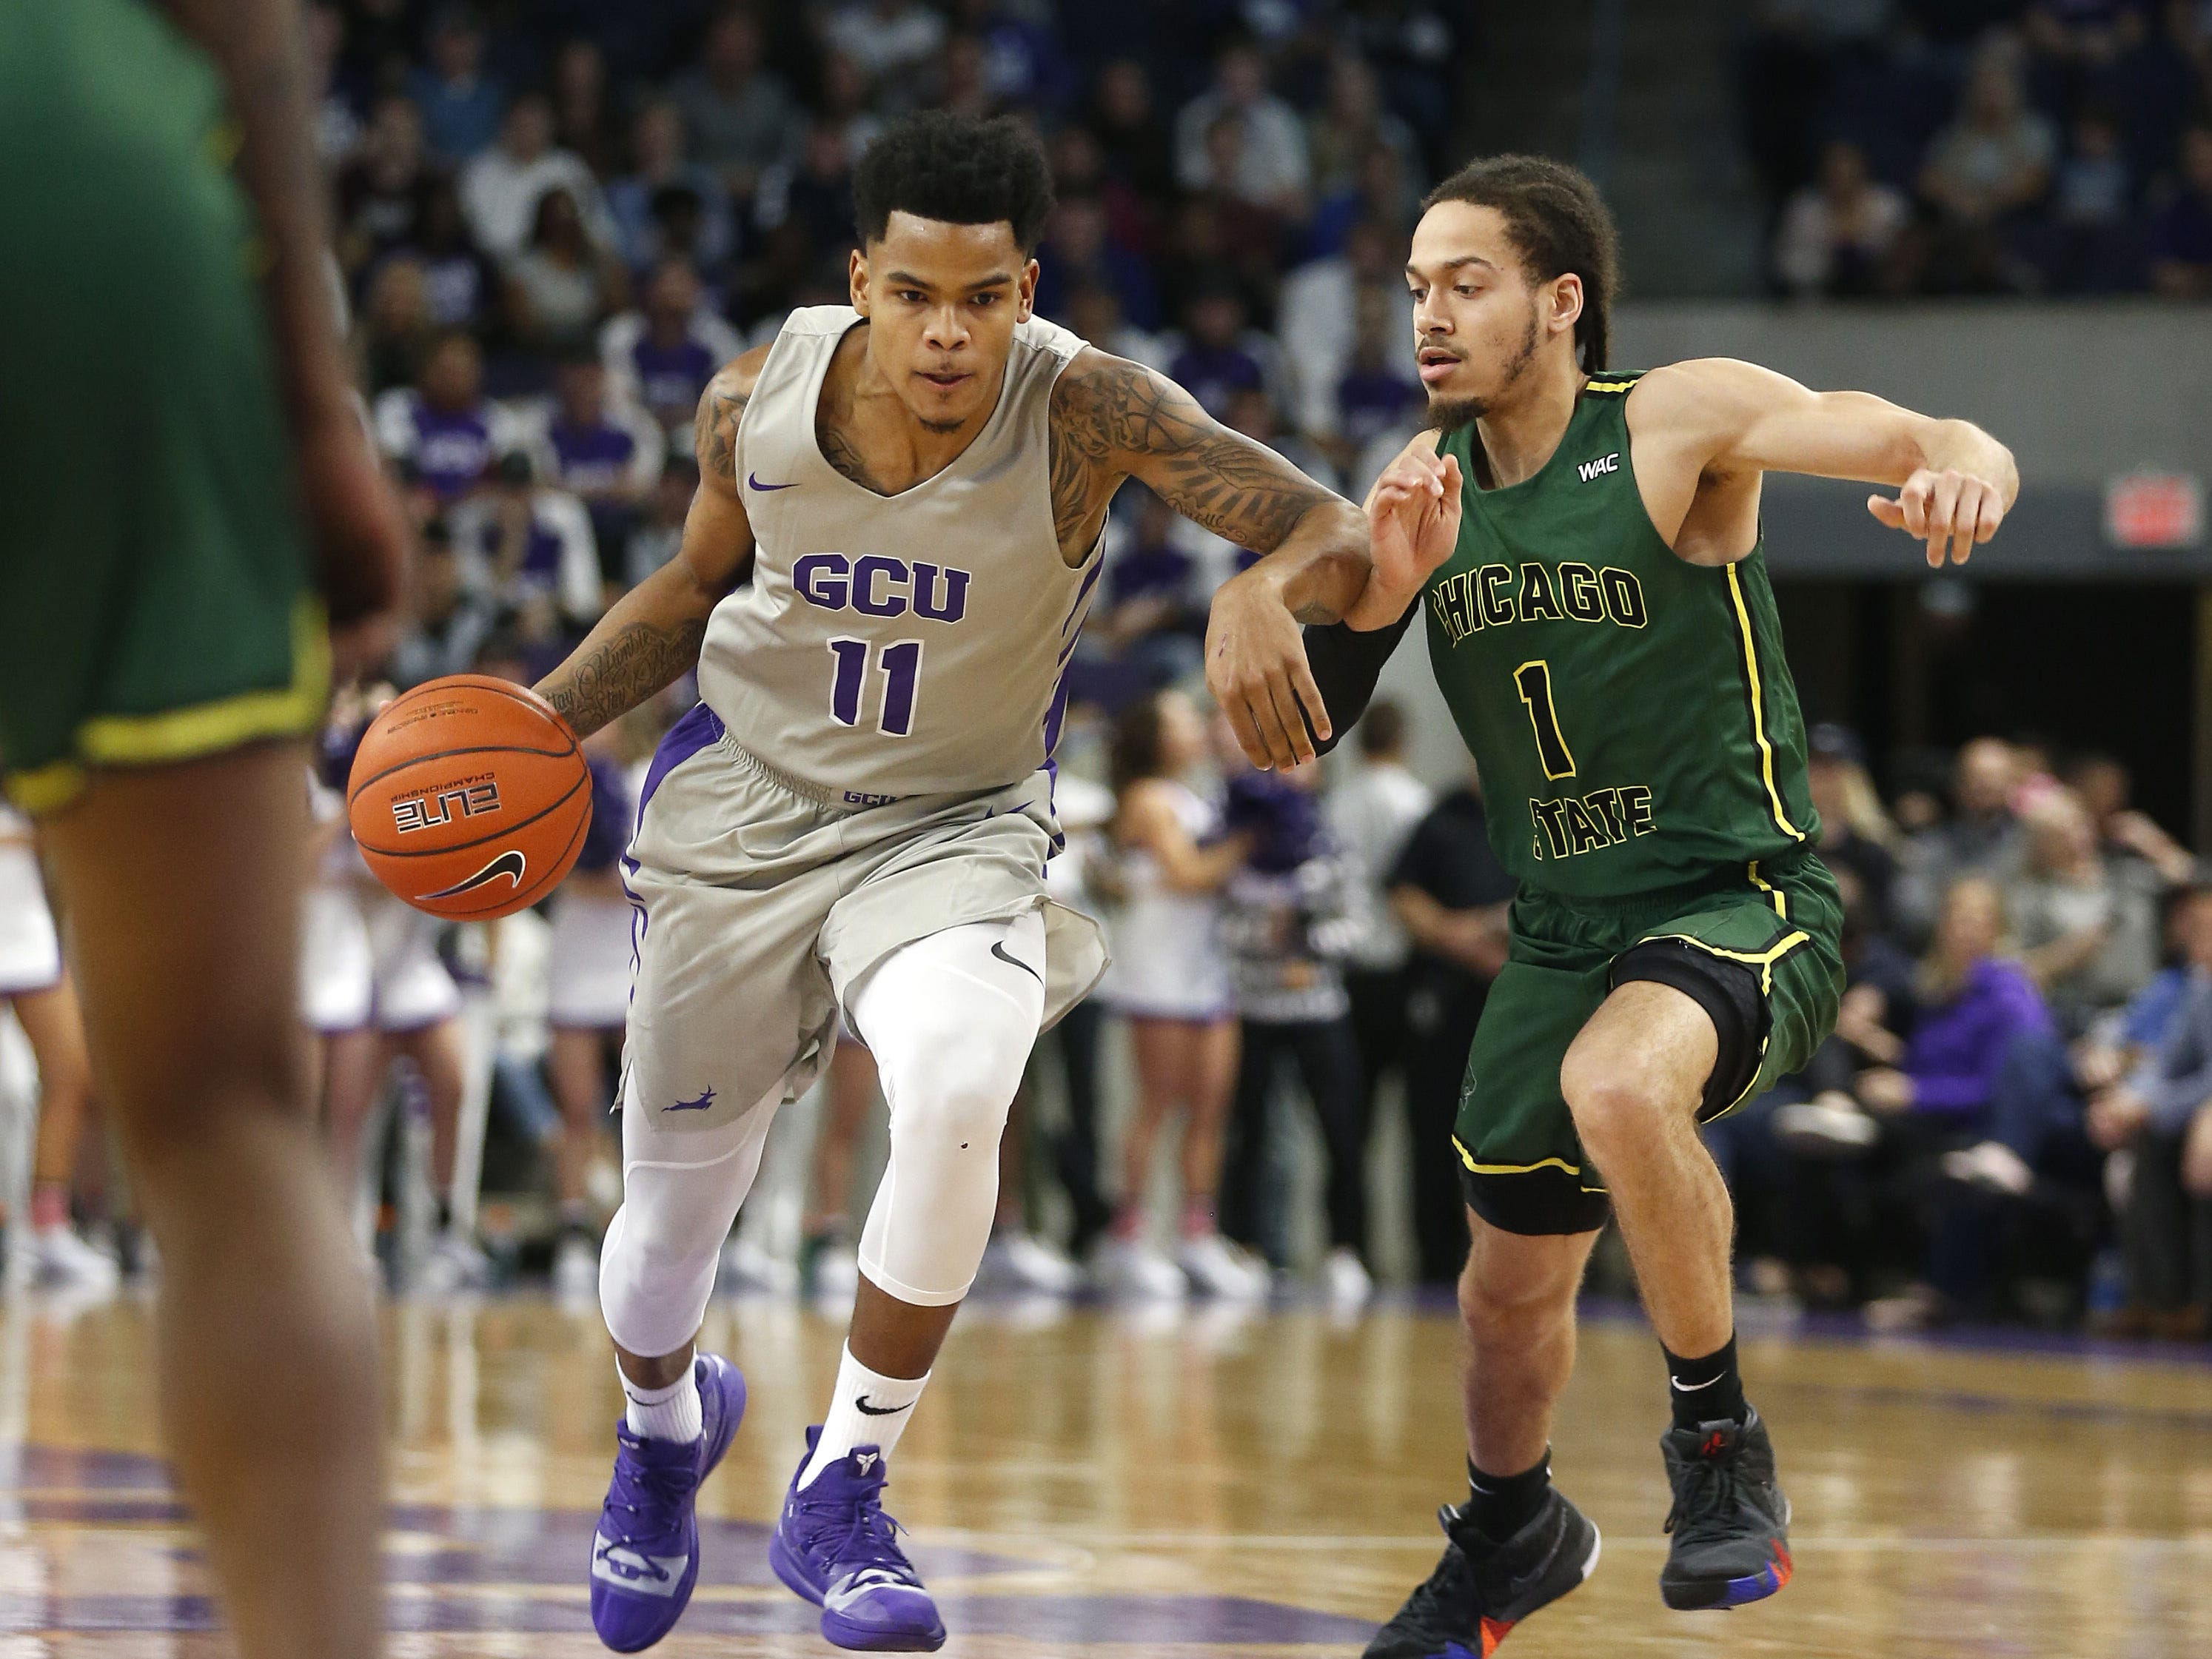 GCU's Damari Milstead (11) drives against Chicago State University's Rob Shaw (1) during the first half at Grand Canyon University Arena in Phoenix, Ariz. on January 17, 2019.